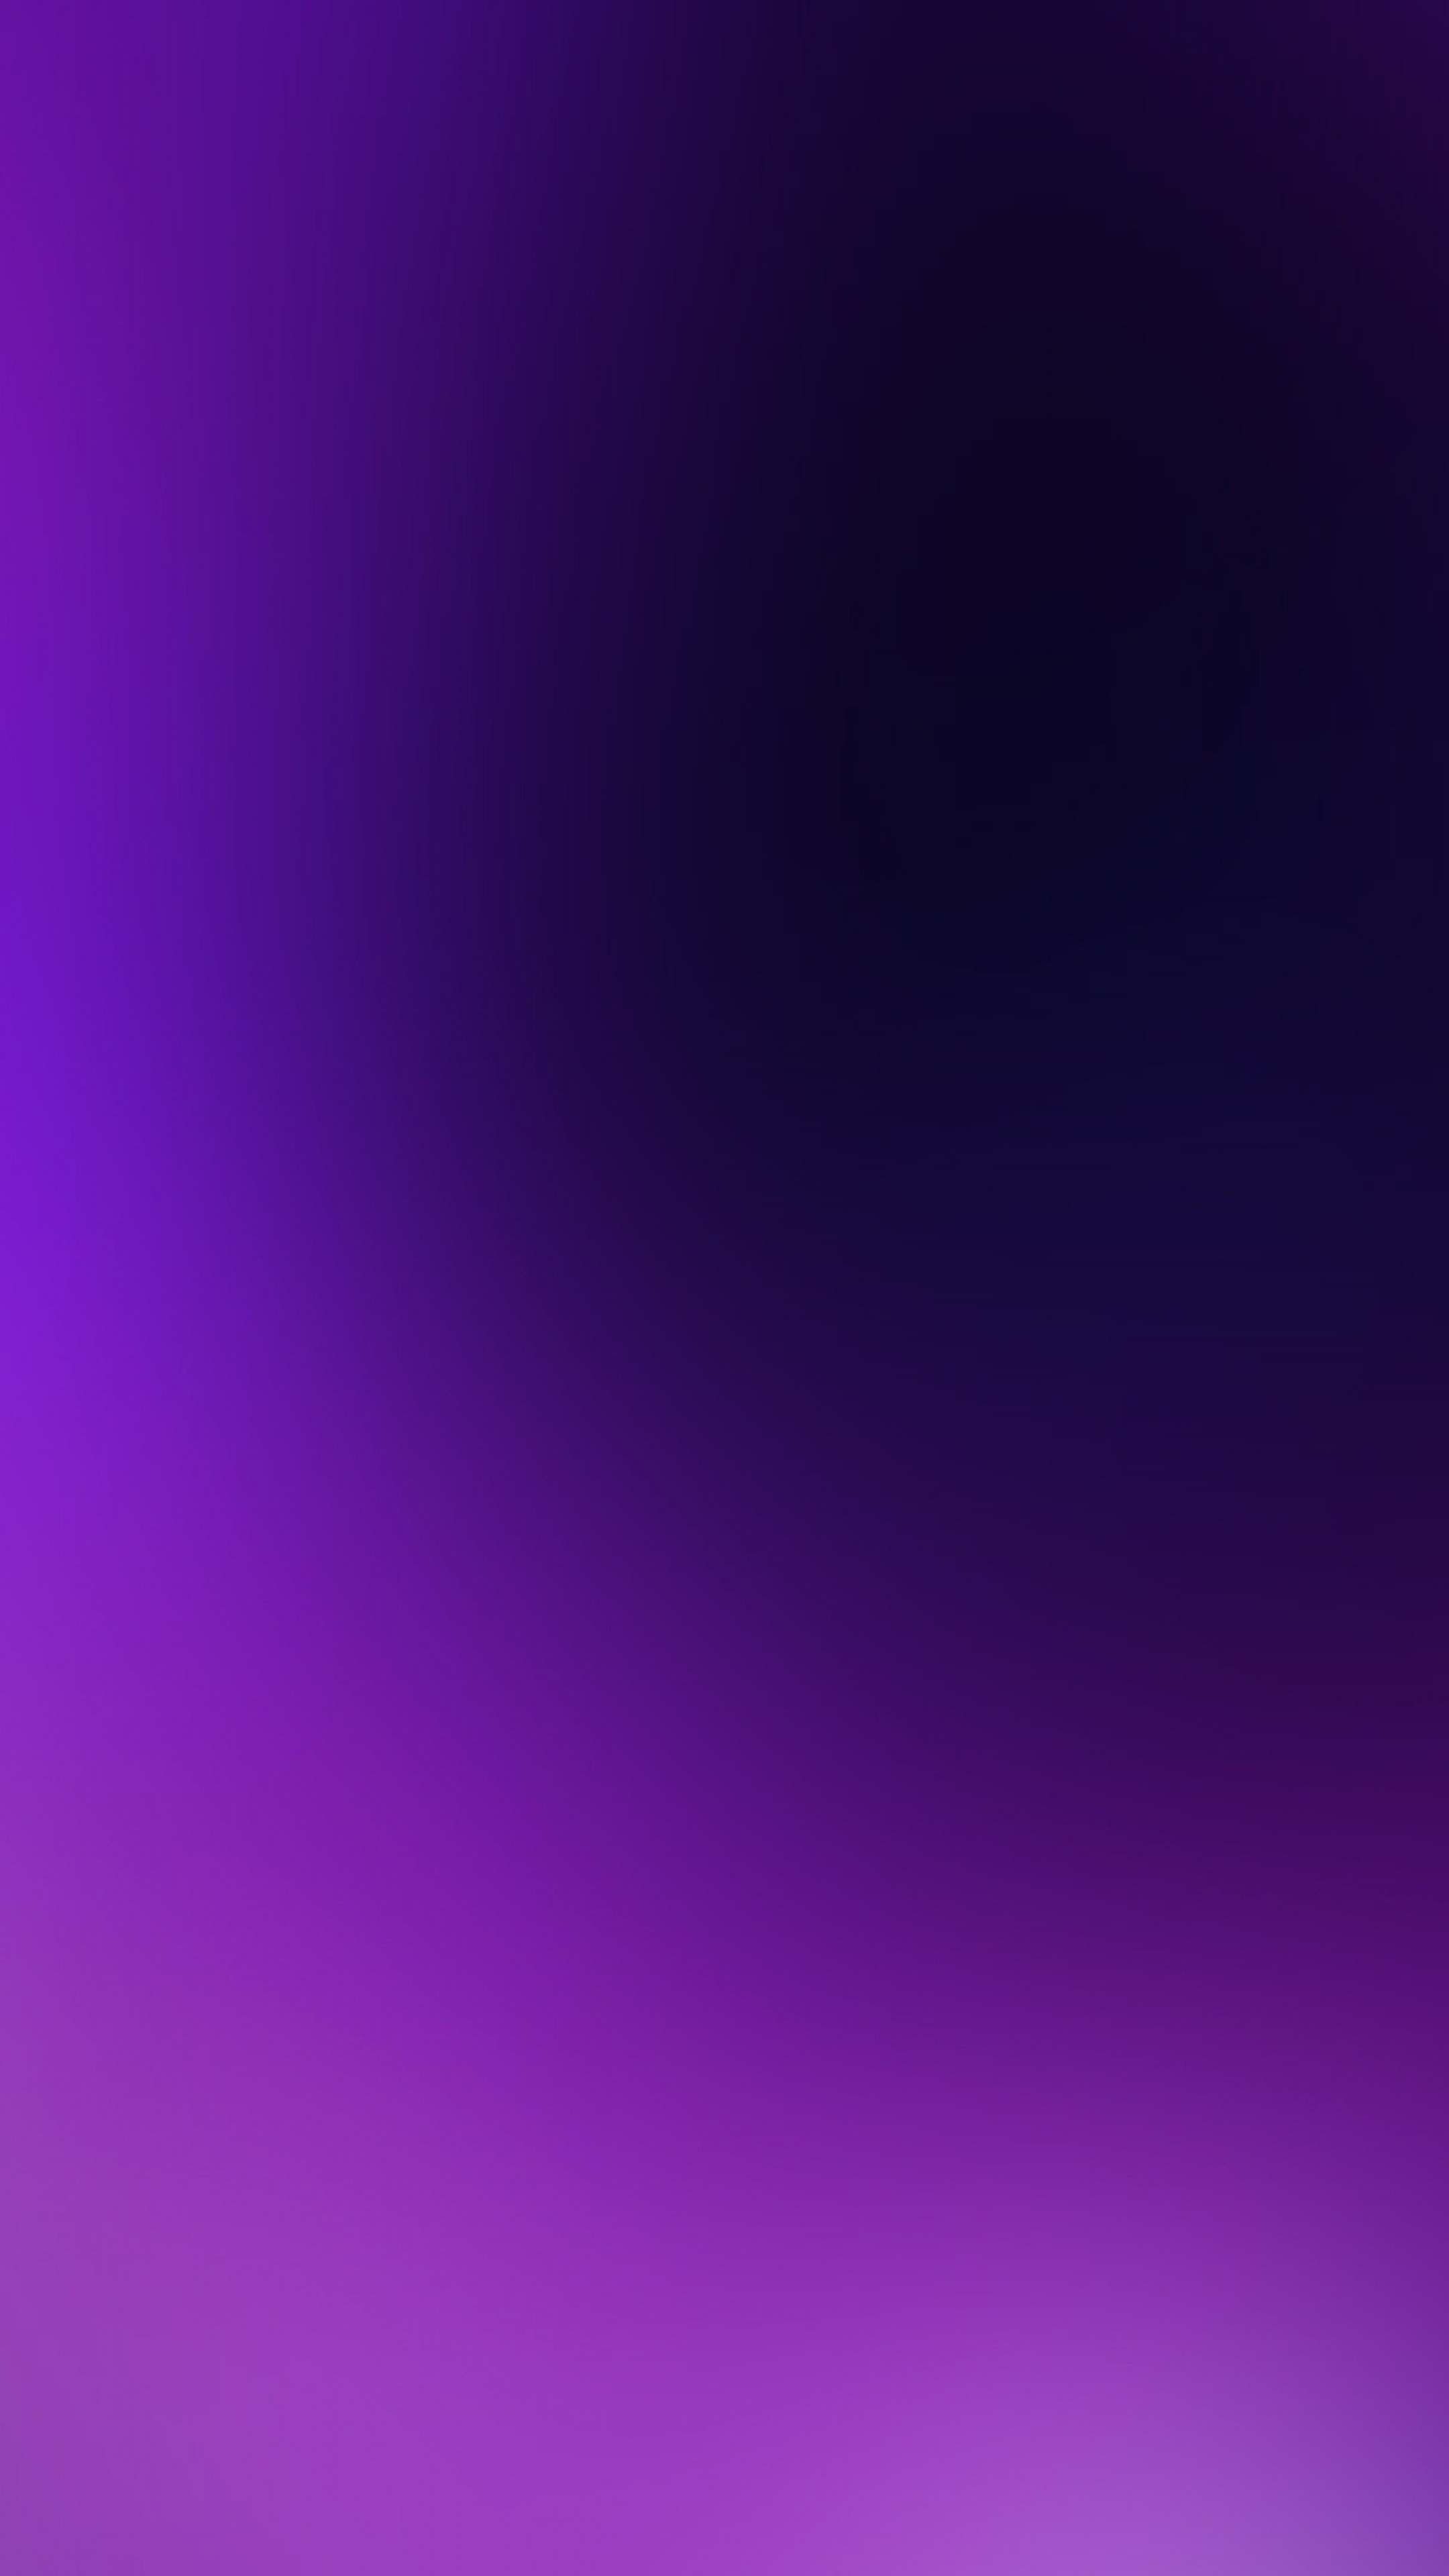 2160x3840  Wallpaper purple, white, background, stains, abstract